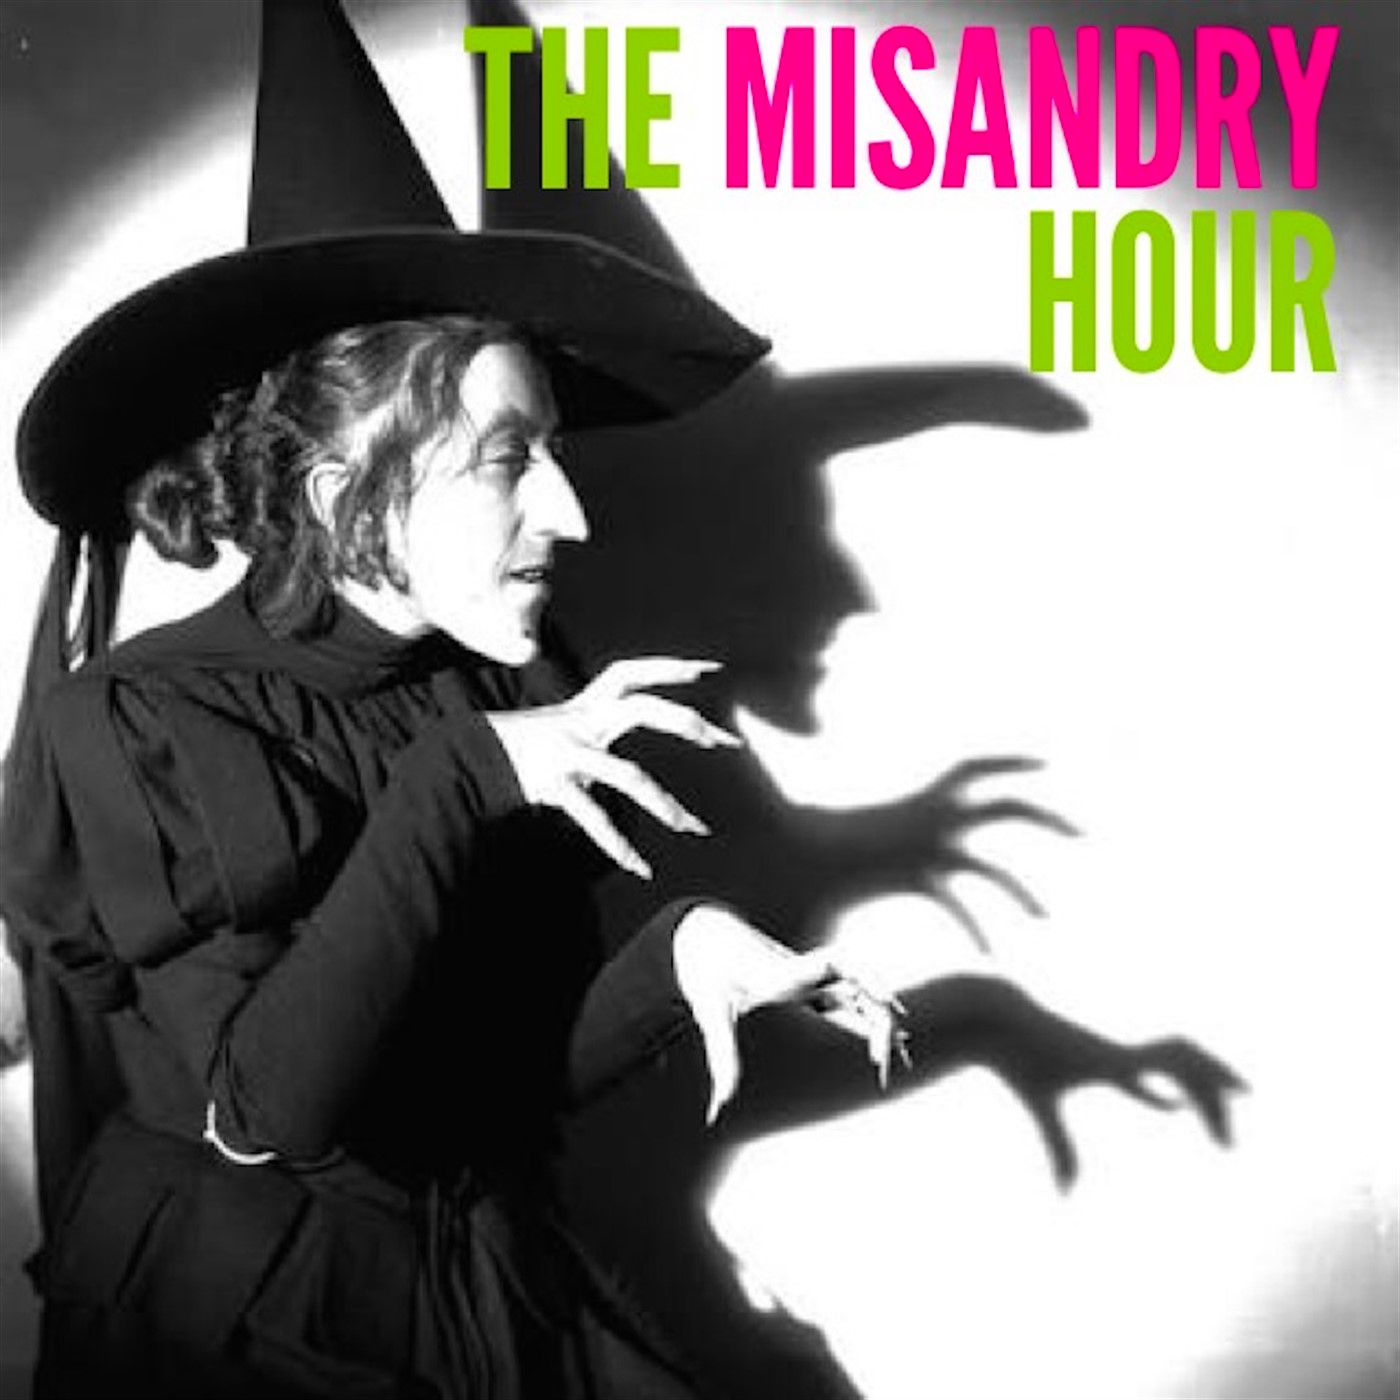 The Misandry Hour